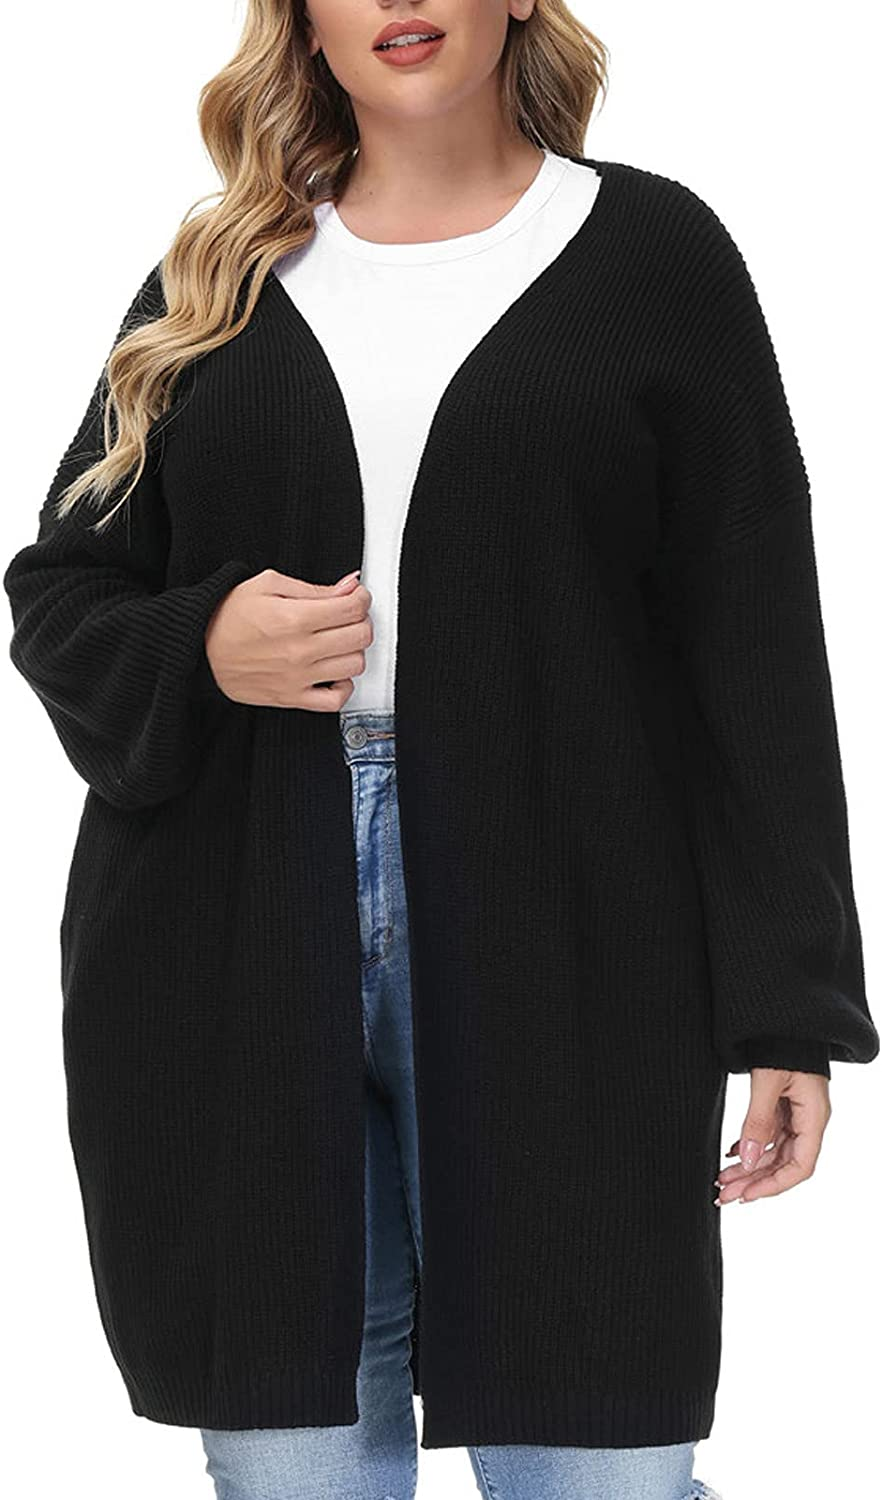 Hanna Nikole Women's Plus Size Long Sleeve Open Front Chunky Knit Cardigan Sweater with Pockets